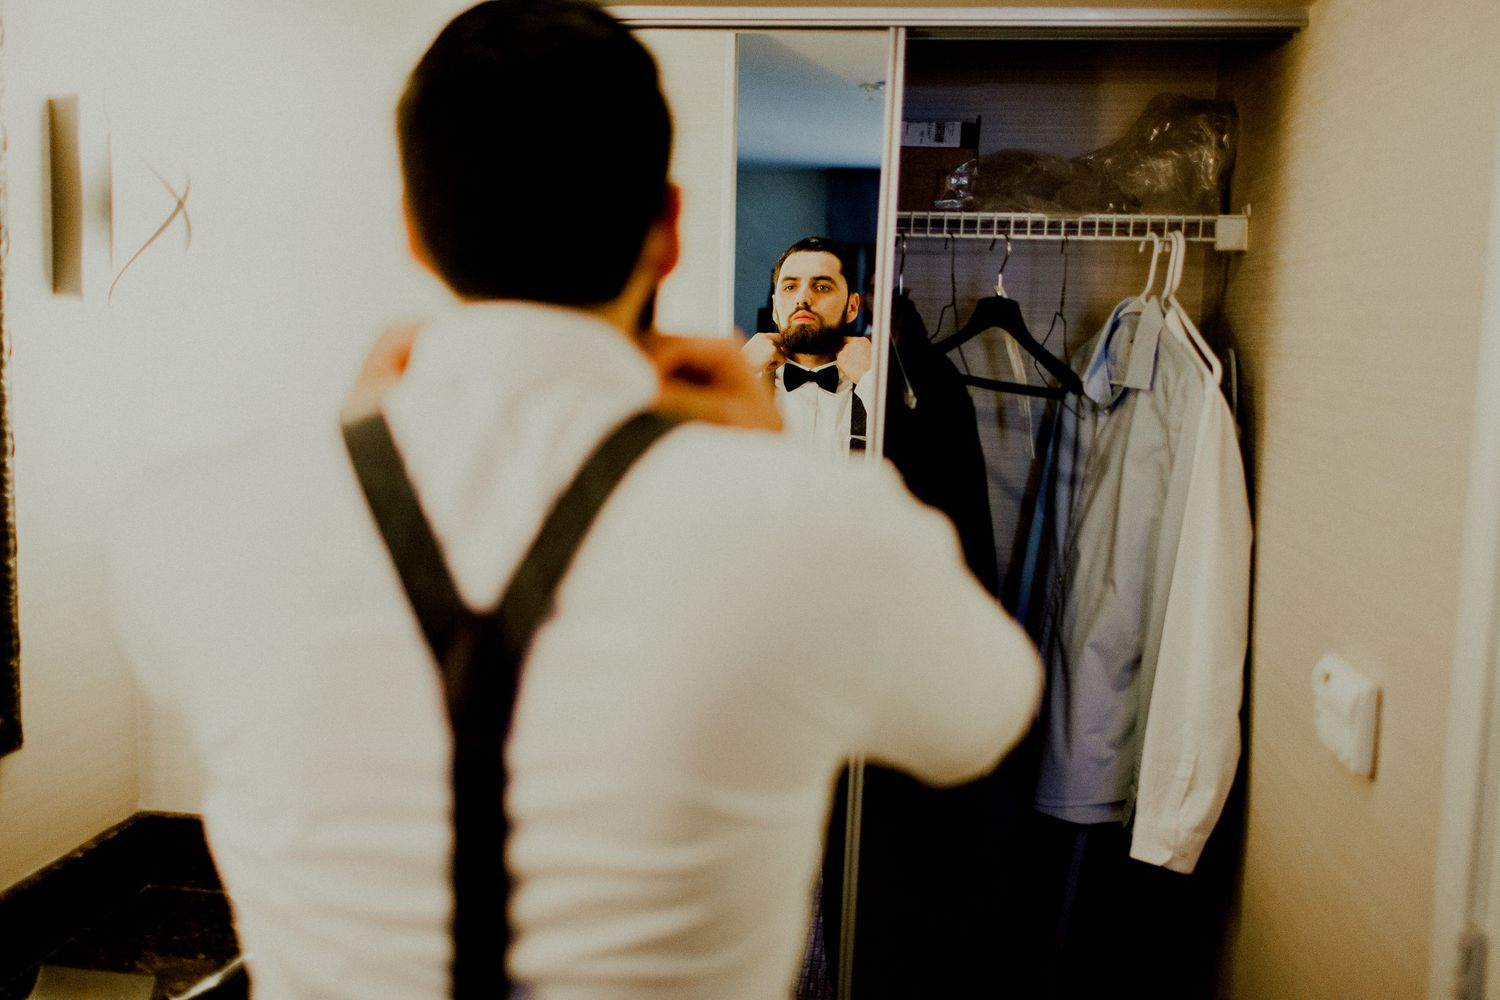 groom adjusting bow tie in front of mirror